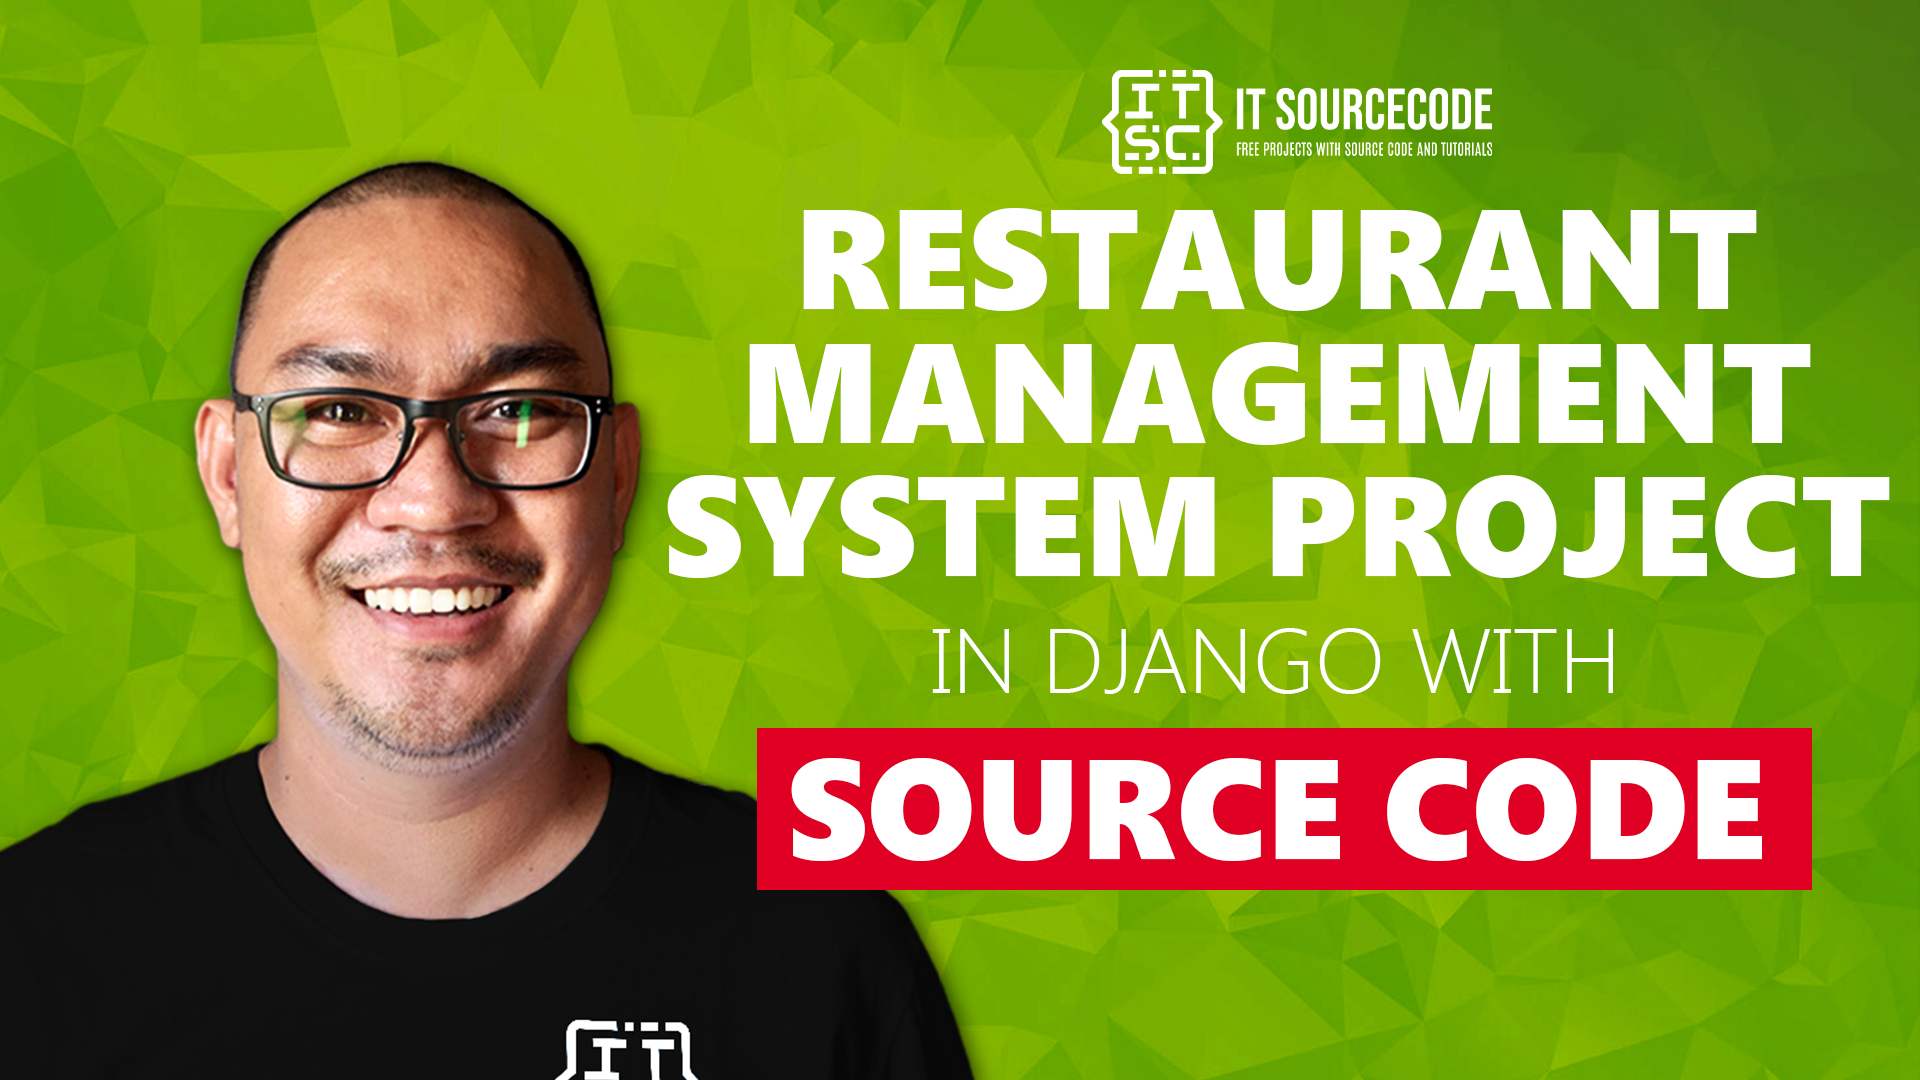 Restaurant Management System Project in Django with Source Code